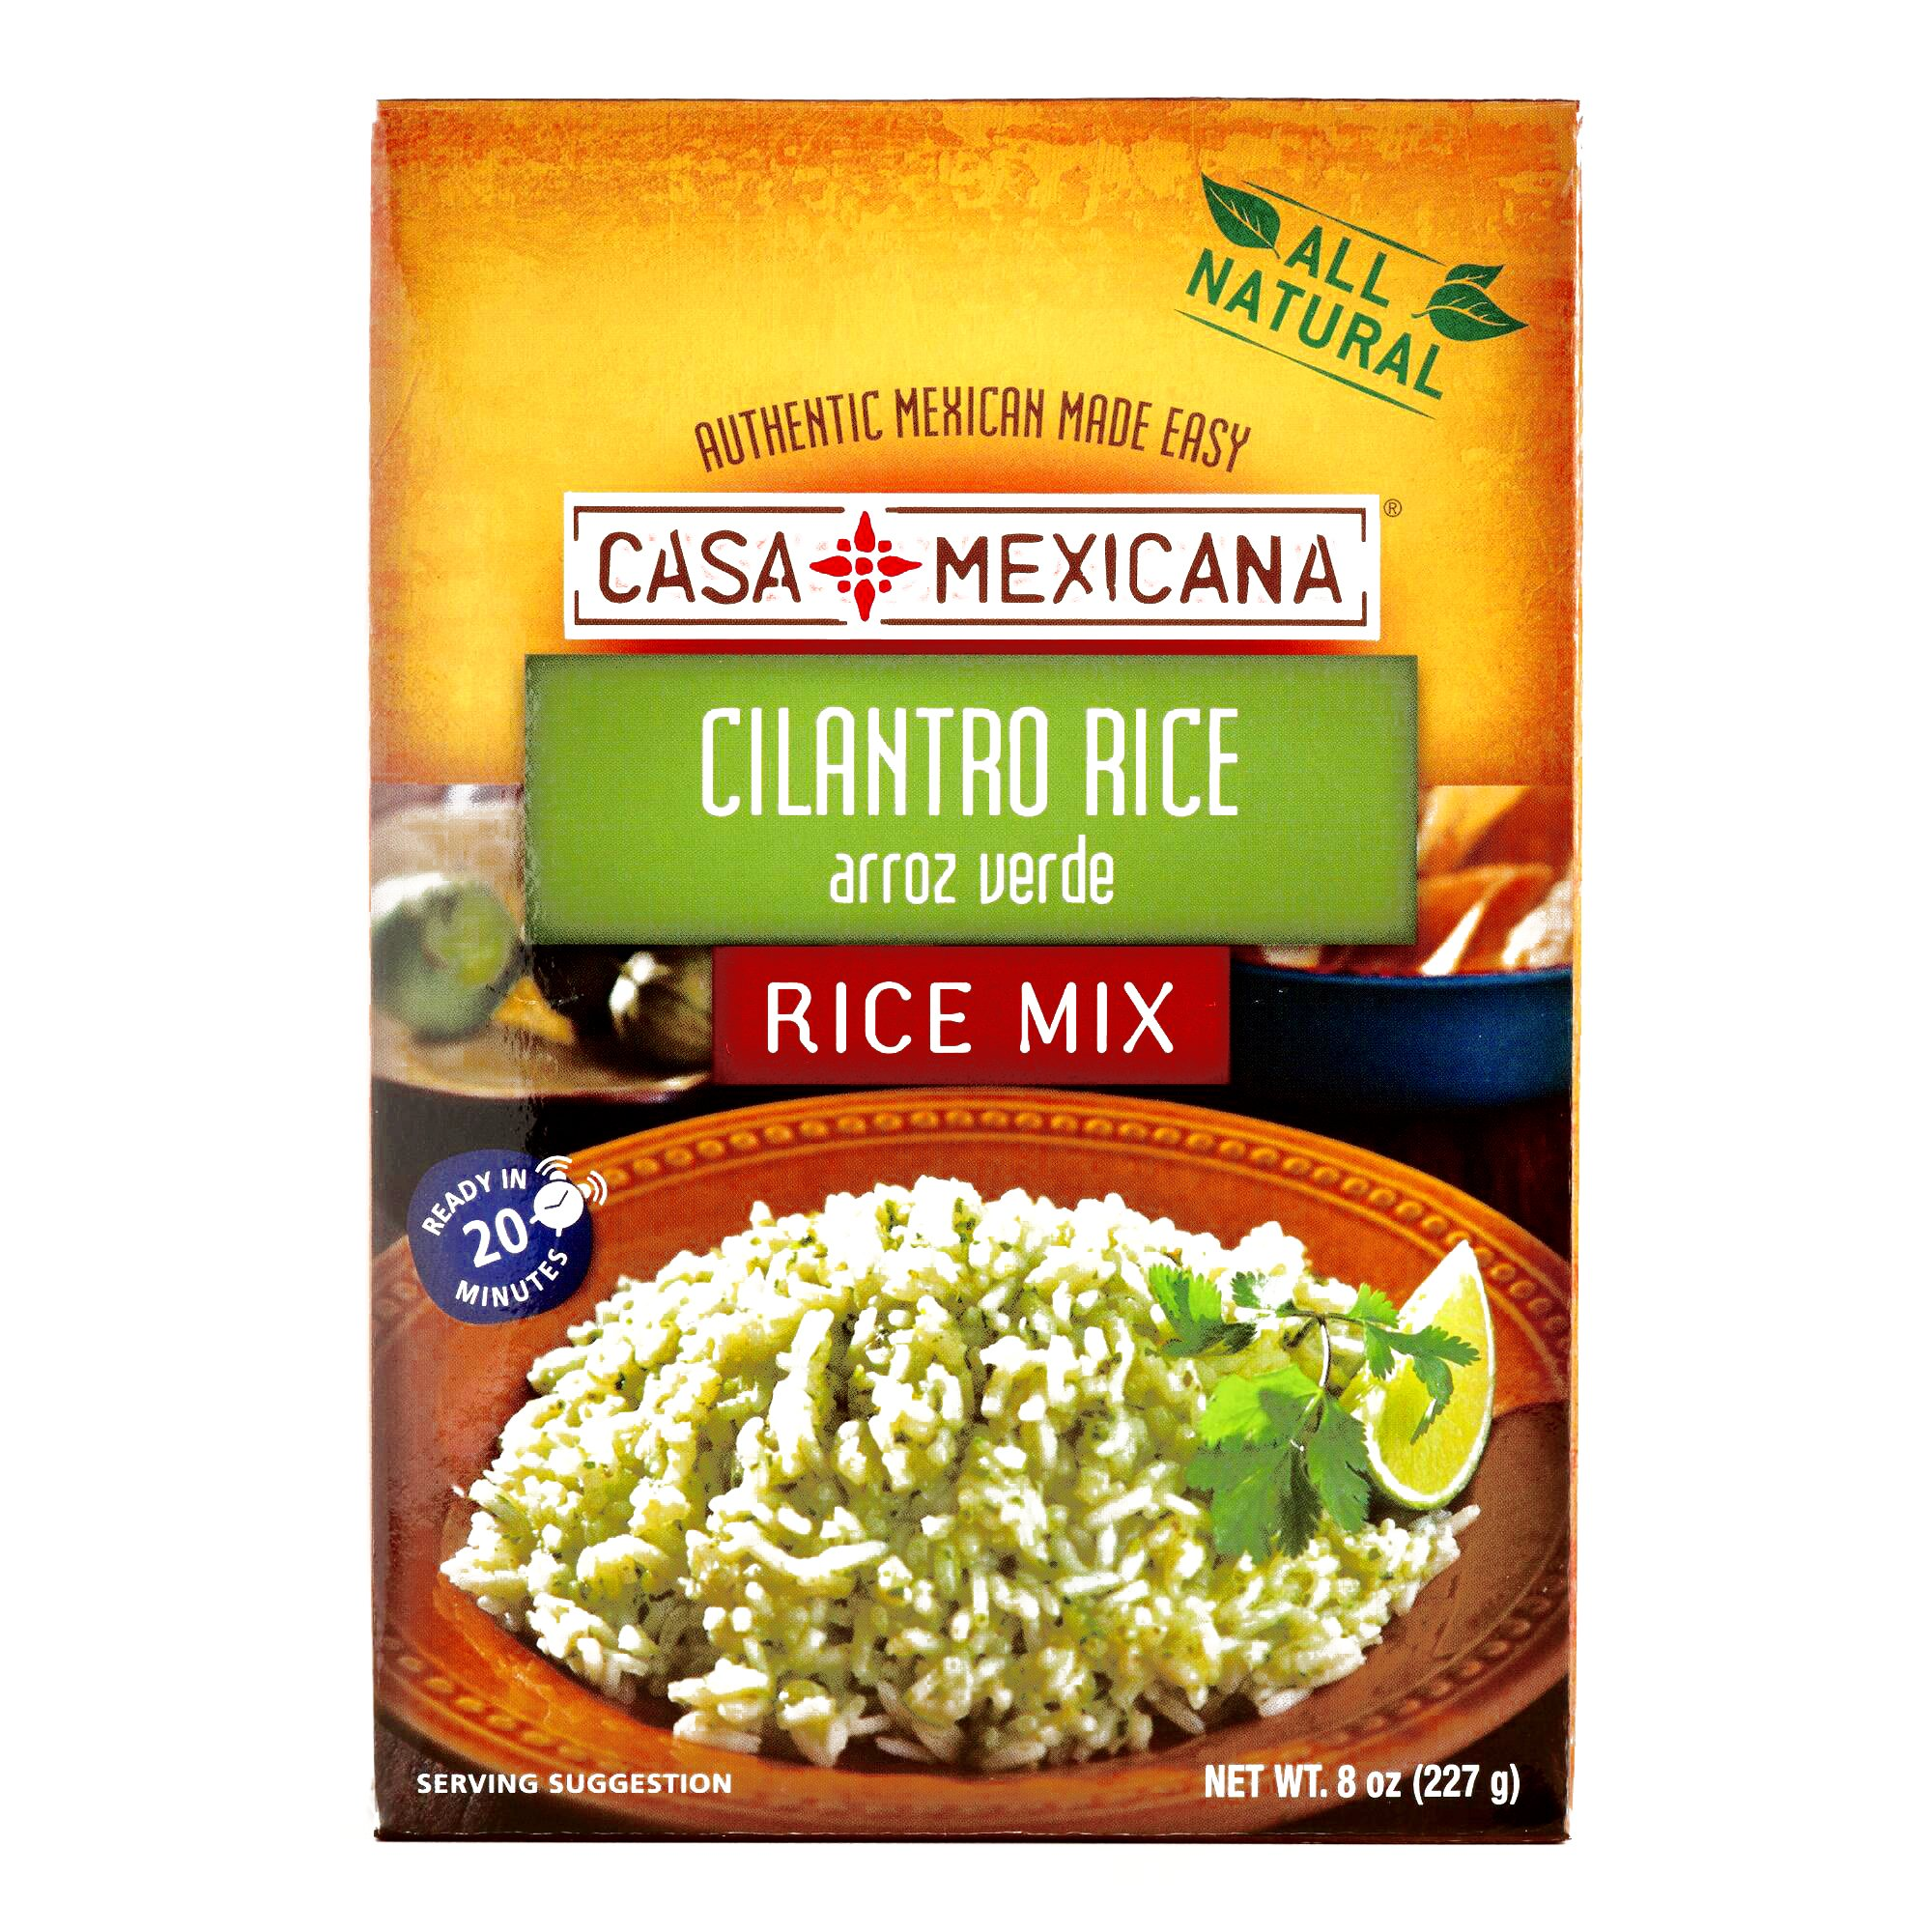 Casa Mexicana Cilantro Rice Mix 8 oz each (1 Item Per Order)